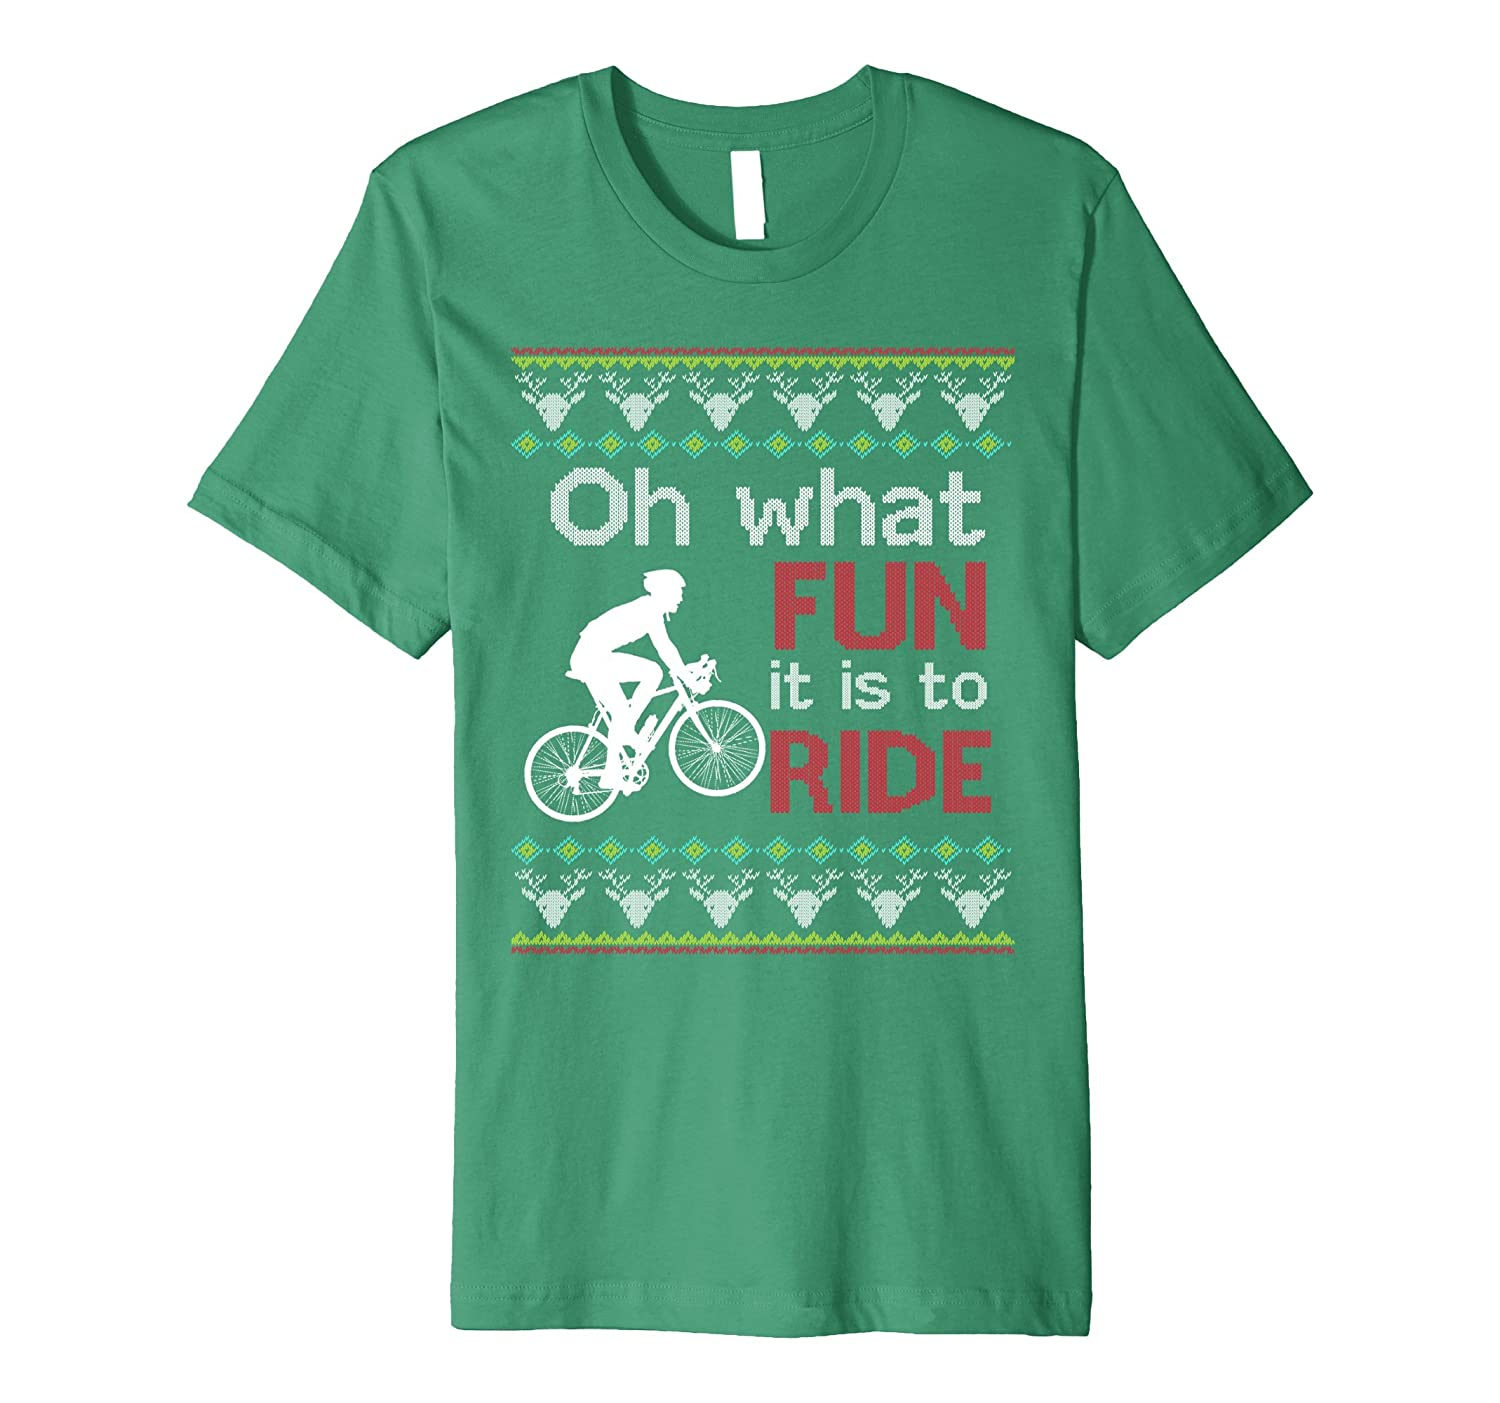 Christmas Fun Bike Ride T-Shirt Design-ANZ - Anztshirt